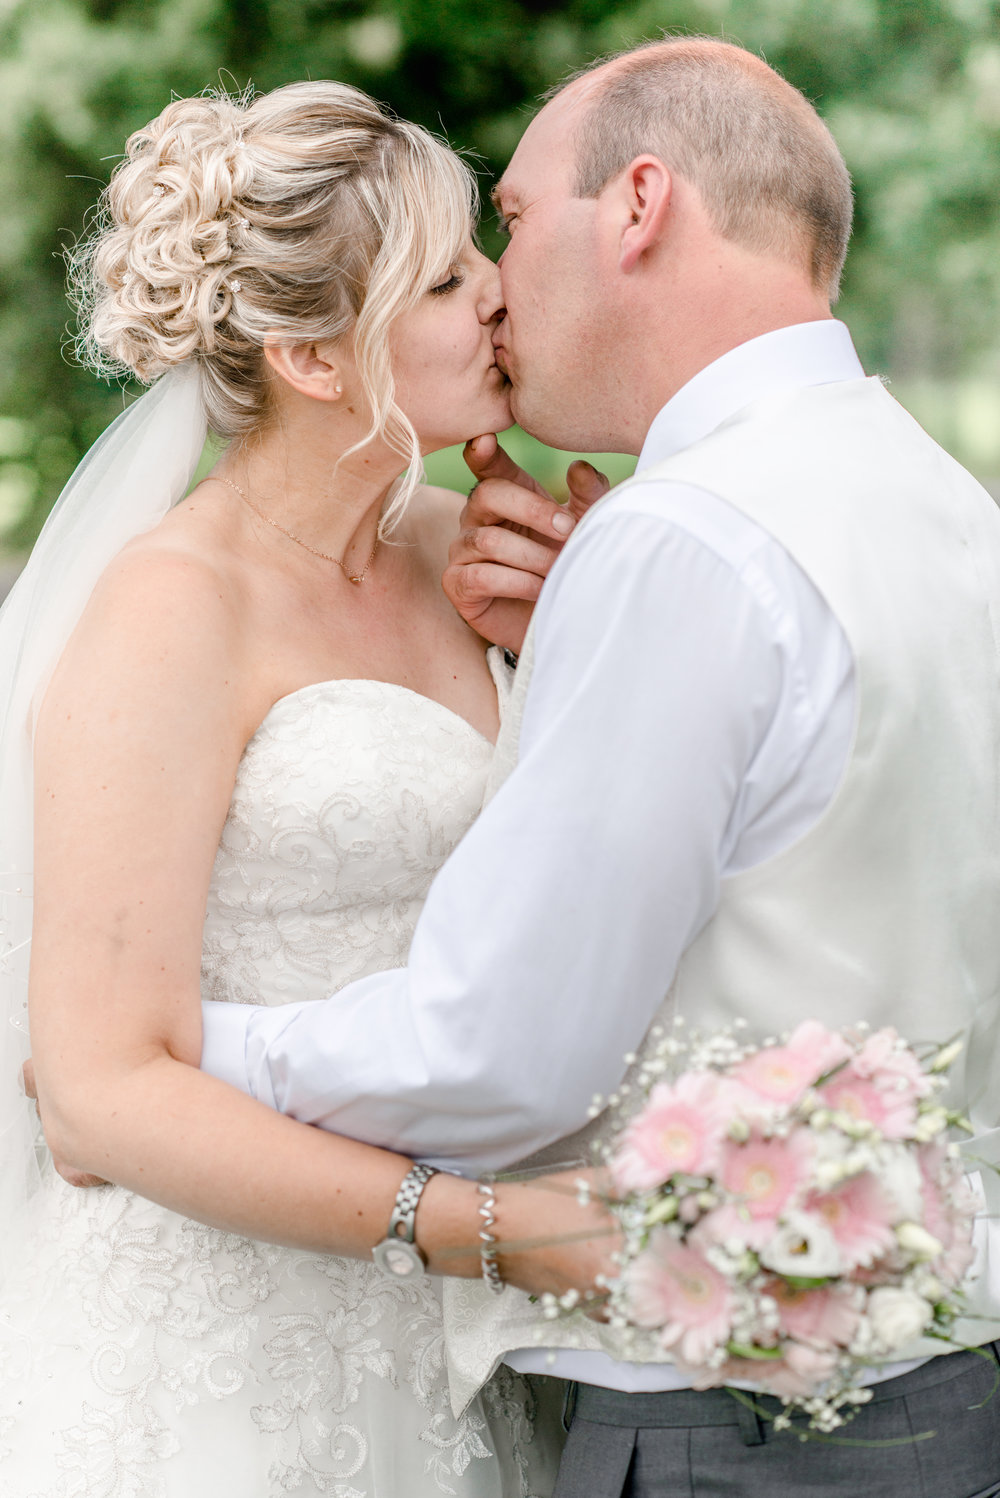 Bernadette and Stuart married at Belton Woods Golf Spa